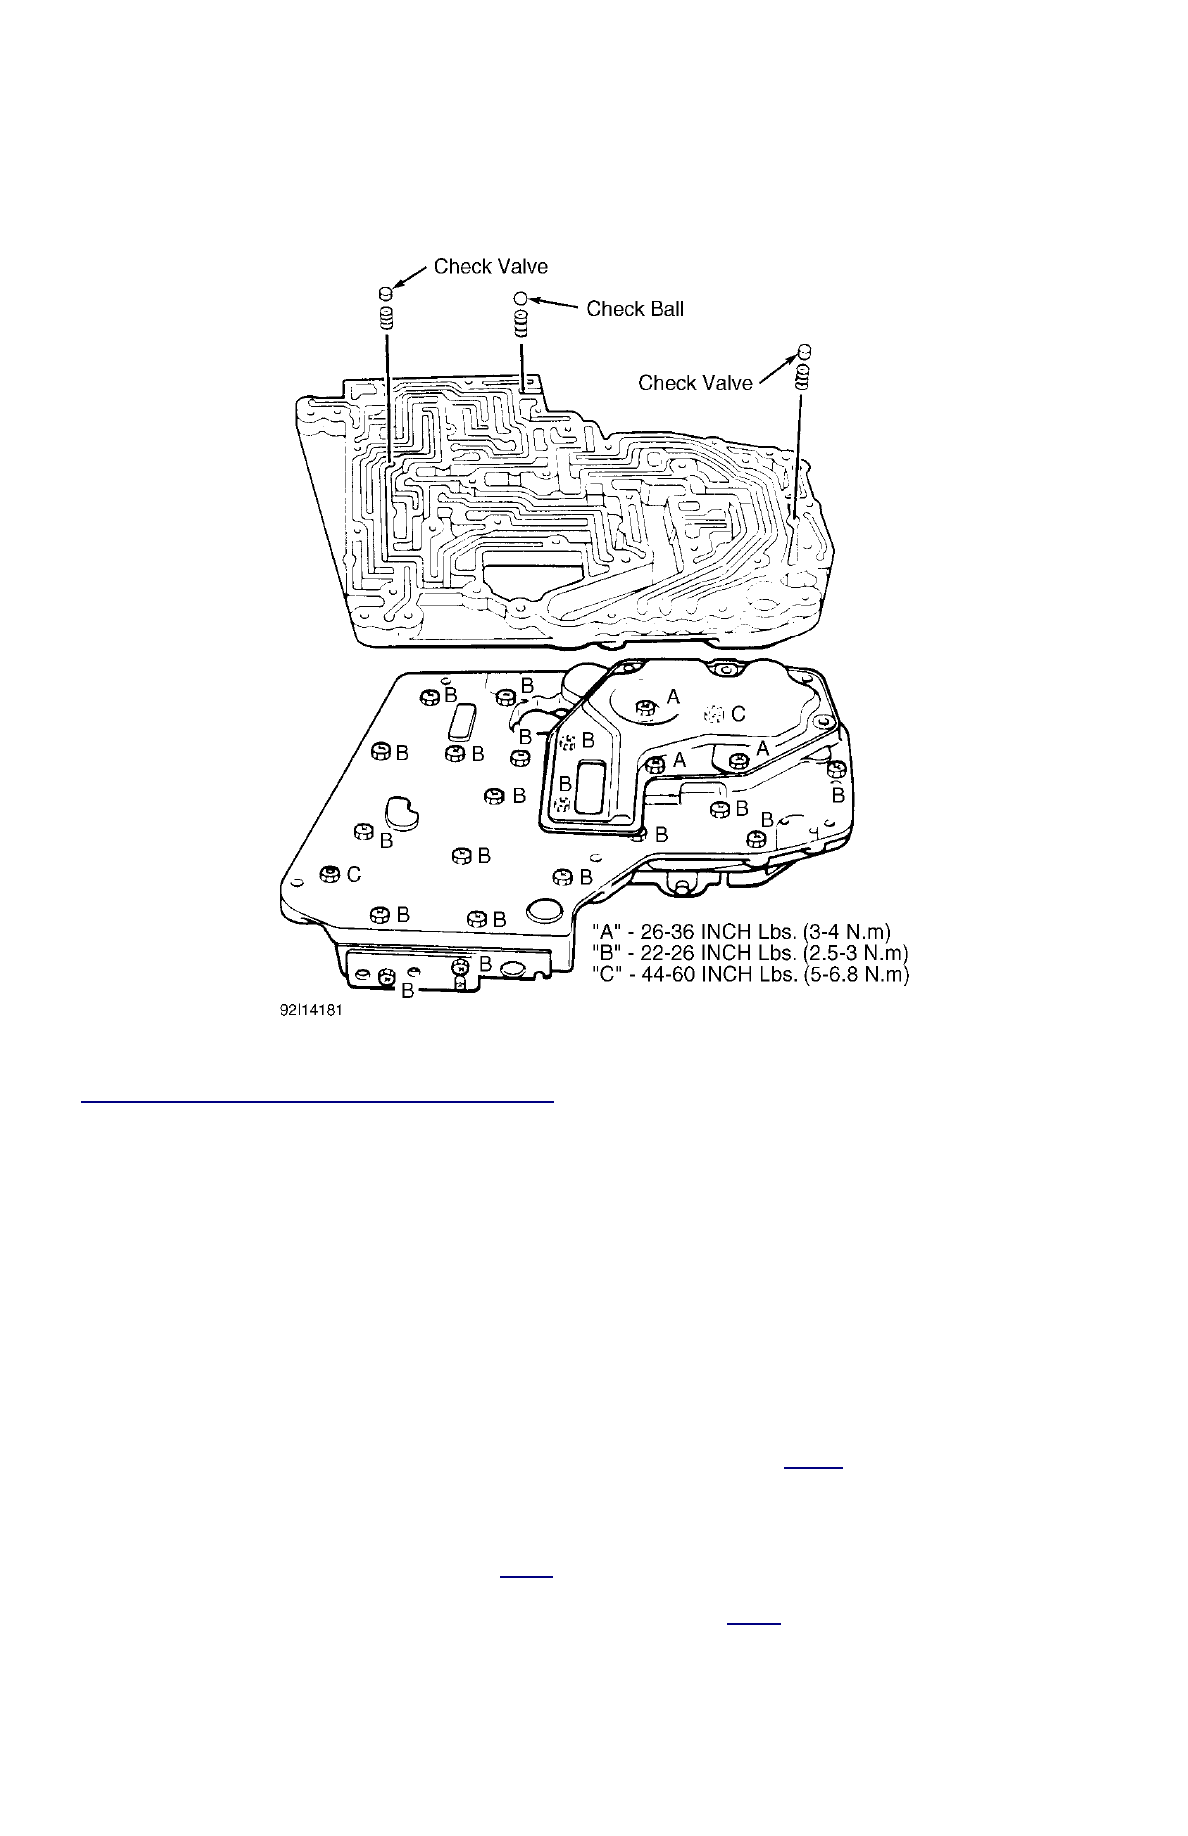 Ford Festiva Instruction Part 107 428 Engine Diagram Fig 23 Locating Valve Body Check Balls Tightening Bolts